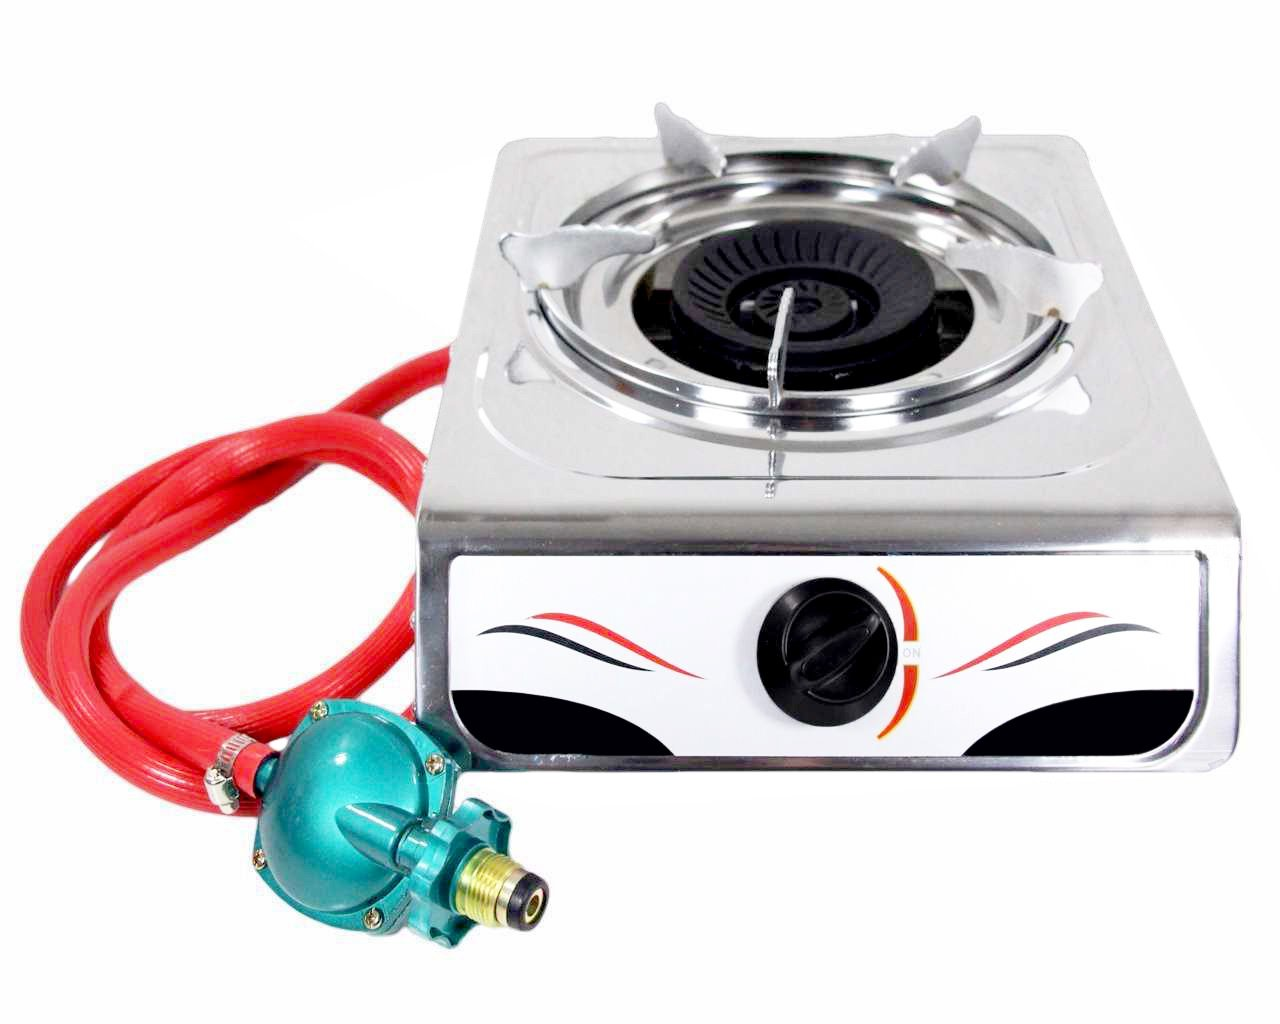 Hunslow Portable Auto Ignition 15,000 BTU Single Burner Propane Gas Stove Stainless Steel Body - Perfect Single Gas Burner for Your Kitchen & Outdoor Camping